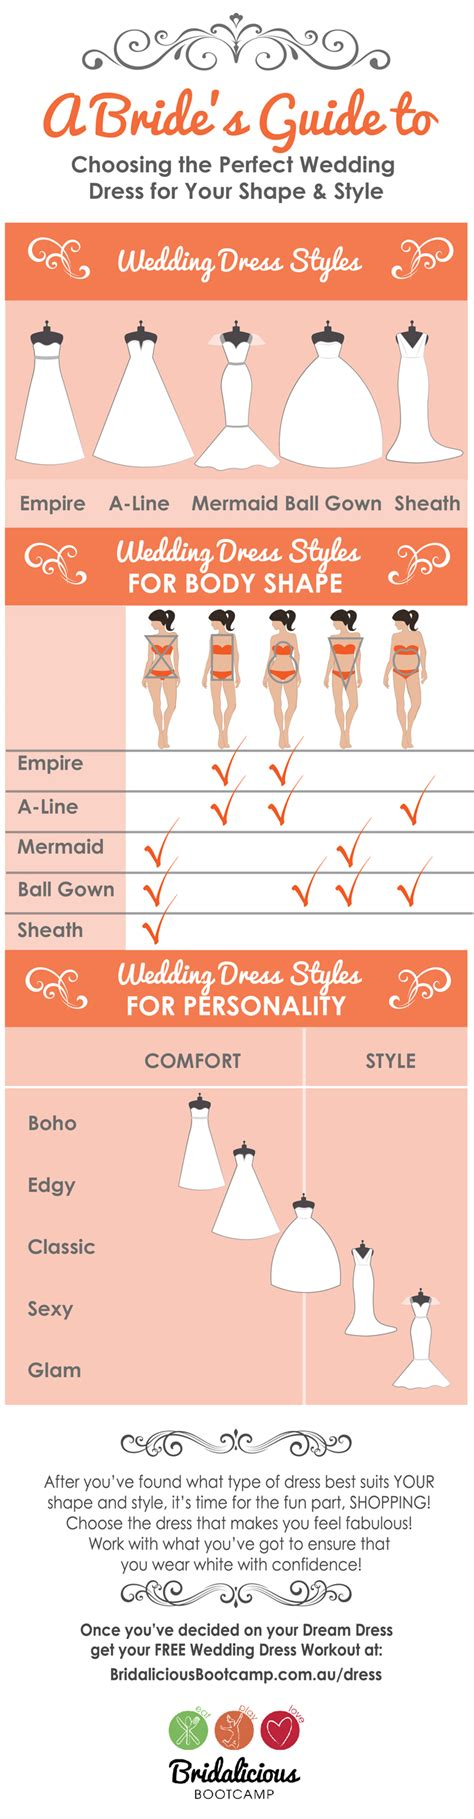 How To Choose The Perfect Wedding Dress For Your Body Type. Kitchen Open To Dining Room. Cheap Dorm Room Furniture. Dorm Room Sex Party. Media Room Blackout Curtains. Game Room Couches. Small Living Room Designs With Fireplace. Decorative Screens Room Dividers. Window Designs For Living Room